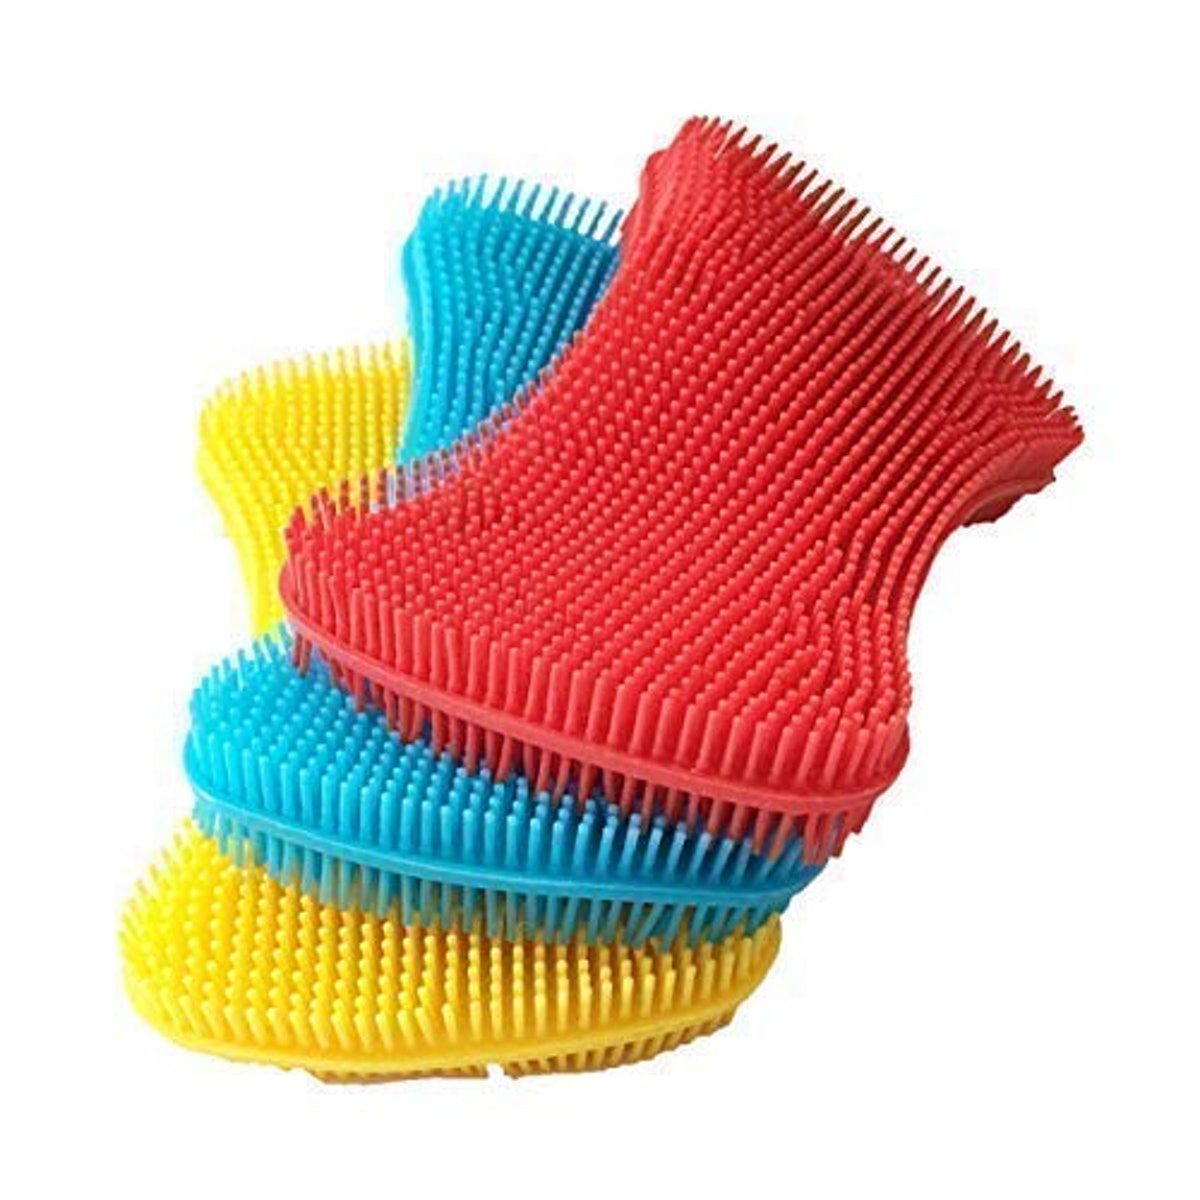 AKop Silicone Dish Scrubbers (3 Pack)